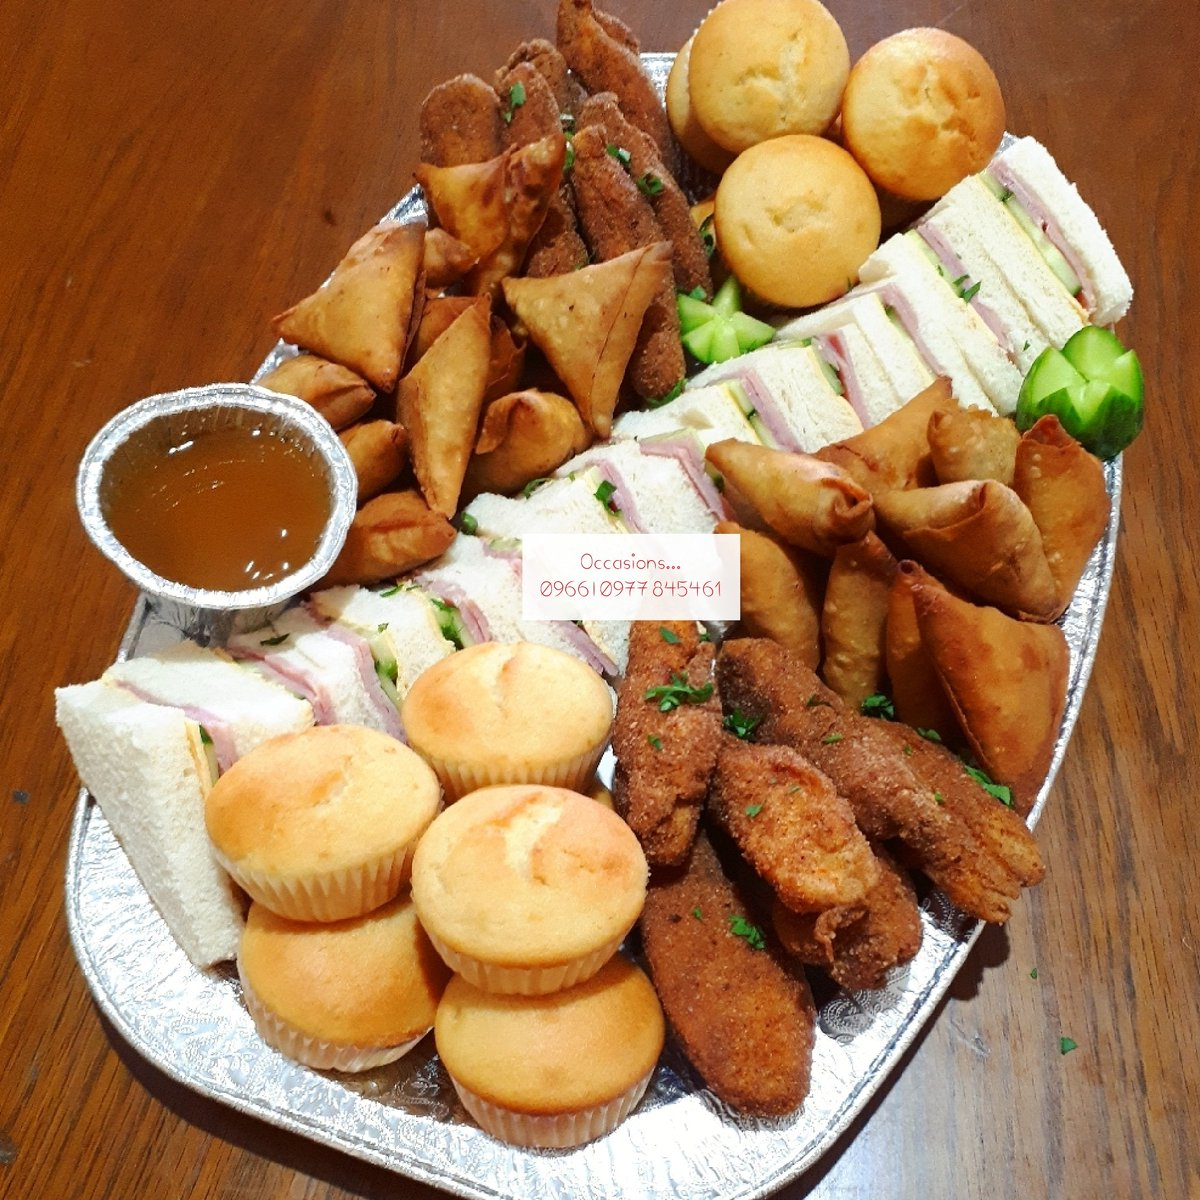 A platter a day takes the Monday blues away! #Occasions #Snacks  #SnackPlatter #Delivery #FingerFood #Catering #Events #Corporate #Meeting  #Party #Birthday #BridalShower #BabyShower #Breakfast #Lunch #HighTea #Picnic #MadeToOrder #MadeWithLove #LocalBusiness #Lusakapic.twitter.com/dMuZTb7SzY